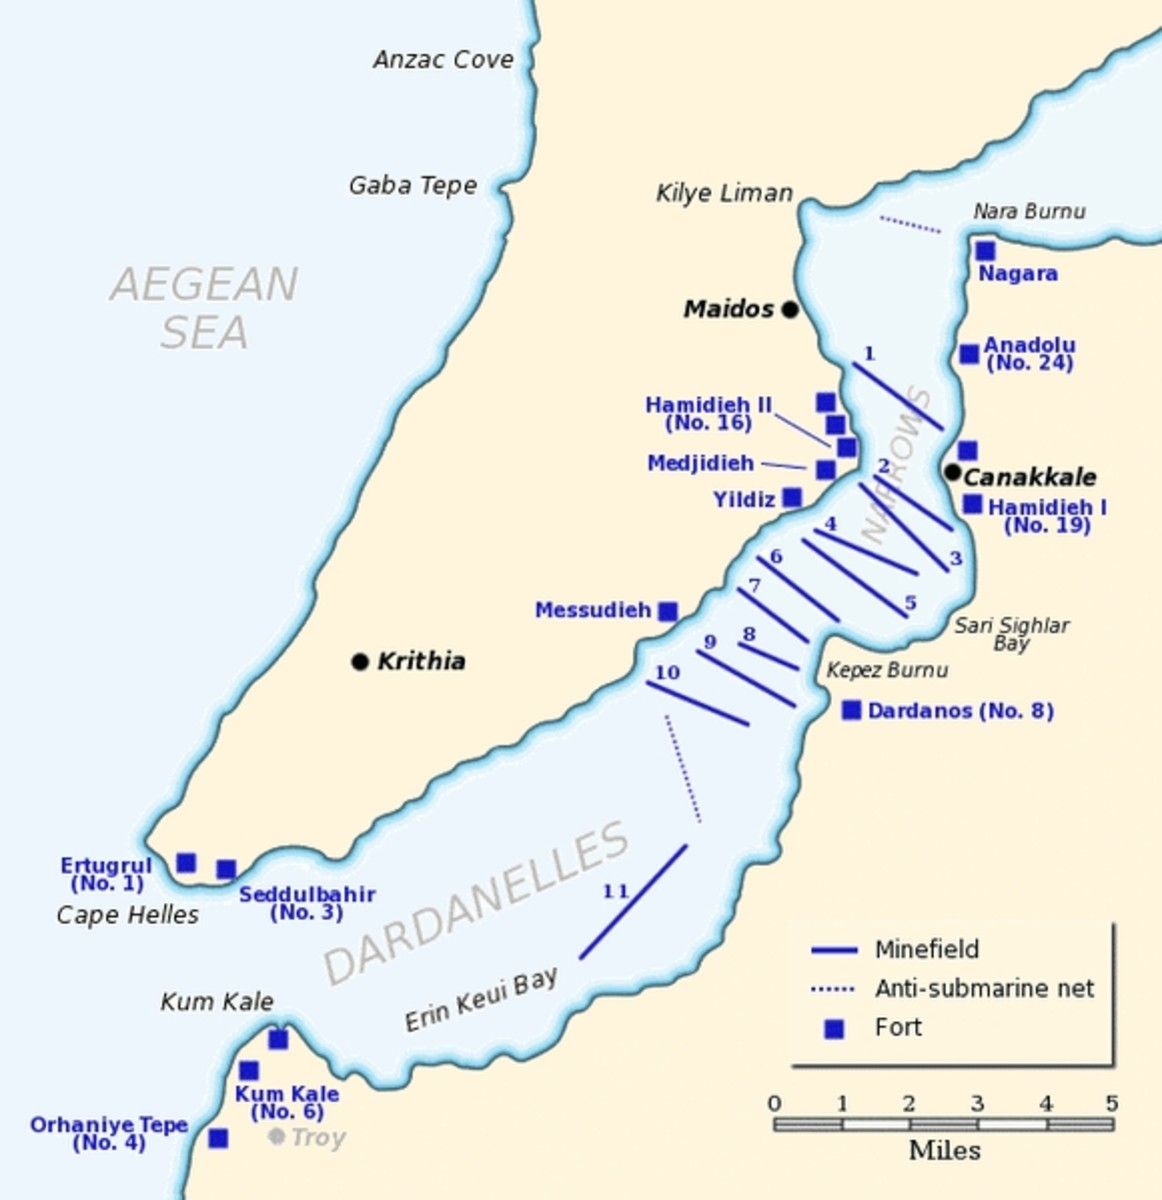 WWI: Map of the Dardanelles defences in February and March, 1915. Minefield #11 was laid by Nusret on March 8, 1915.